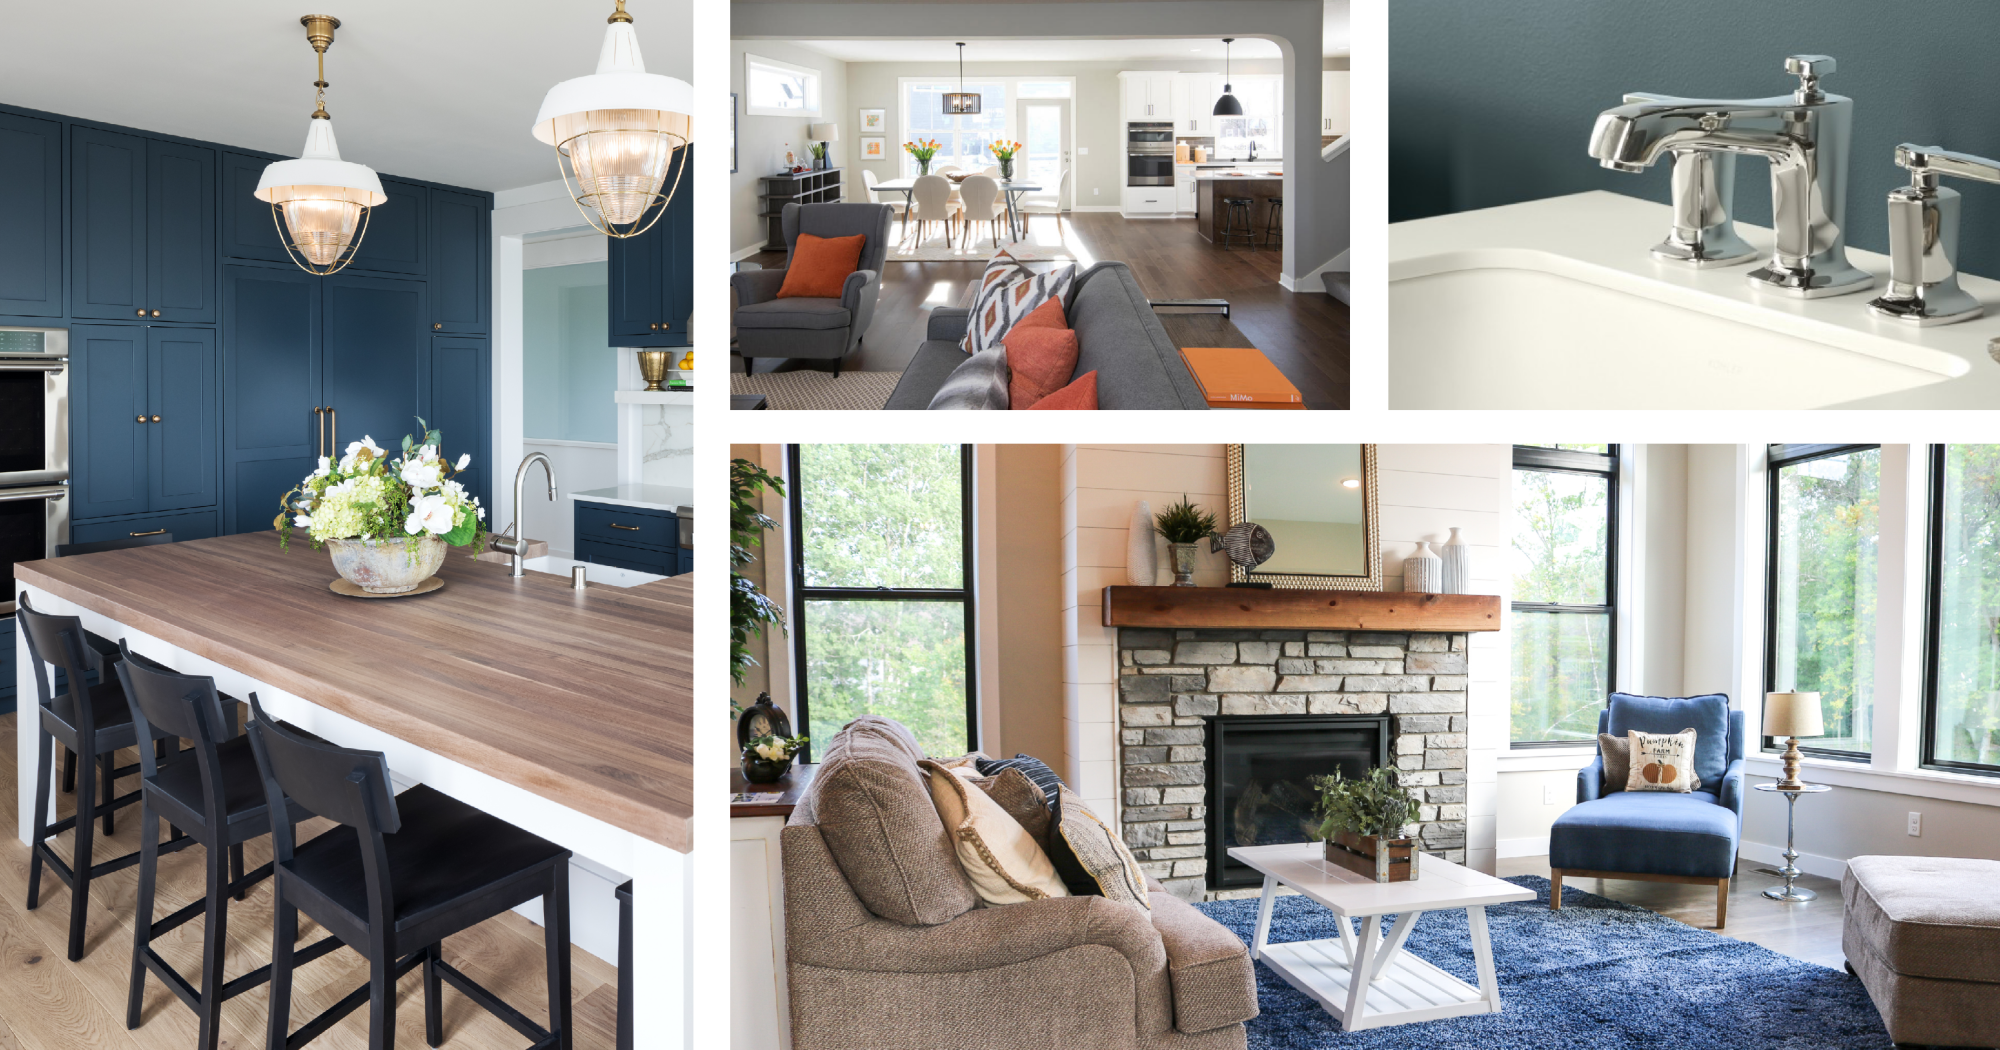 2019 home design trends - Interior design trends 2019 ...